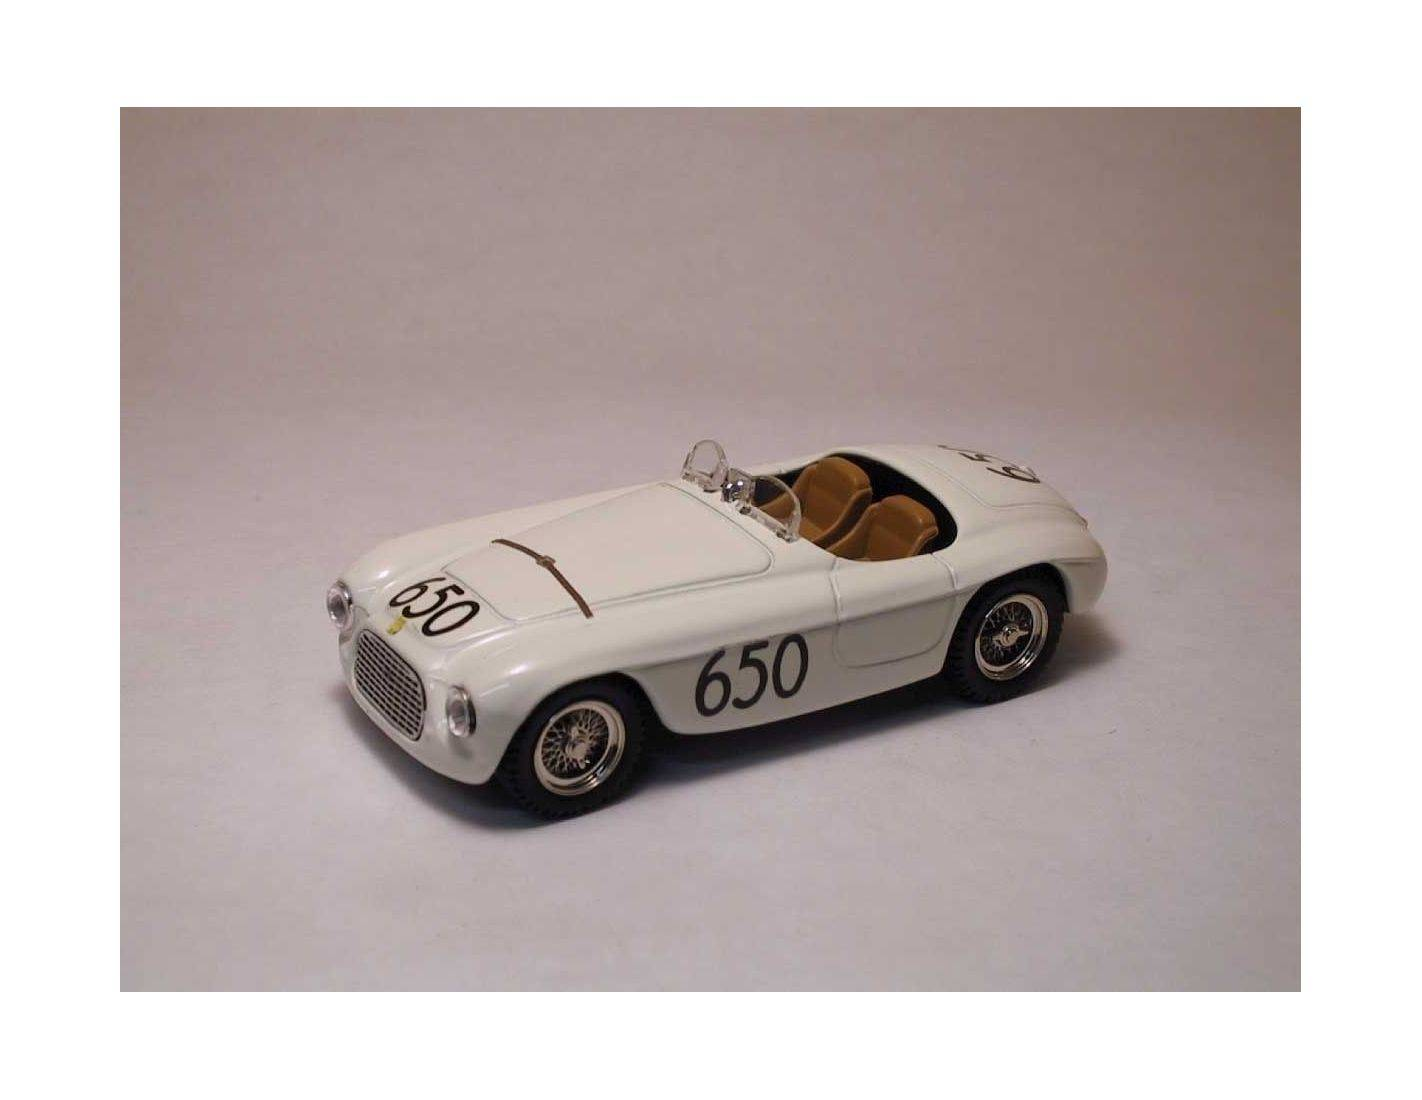 Art Model AM0017 FERRARI 166 MM SPYDER N.650 ACCIDENT MM 1950 MARZOTTO-CRISTALDI 1:43 Modellino